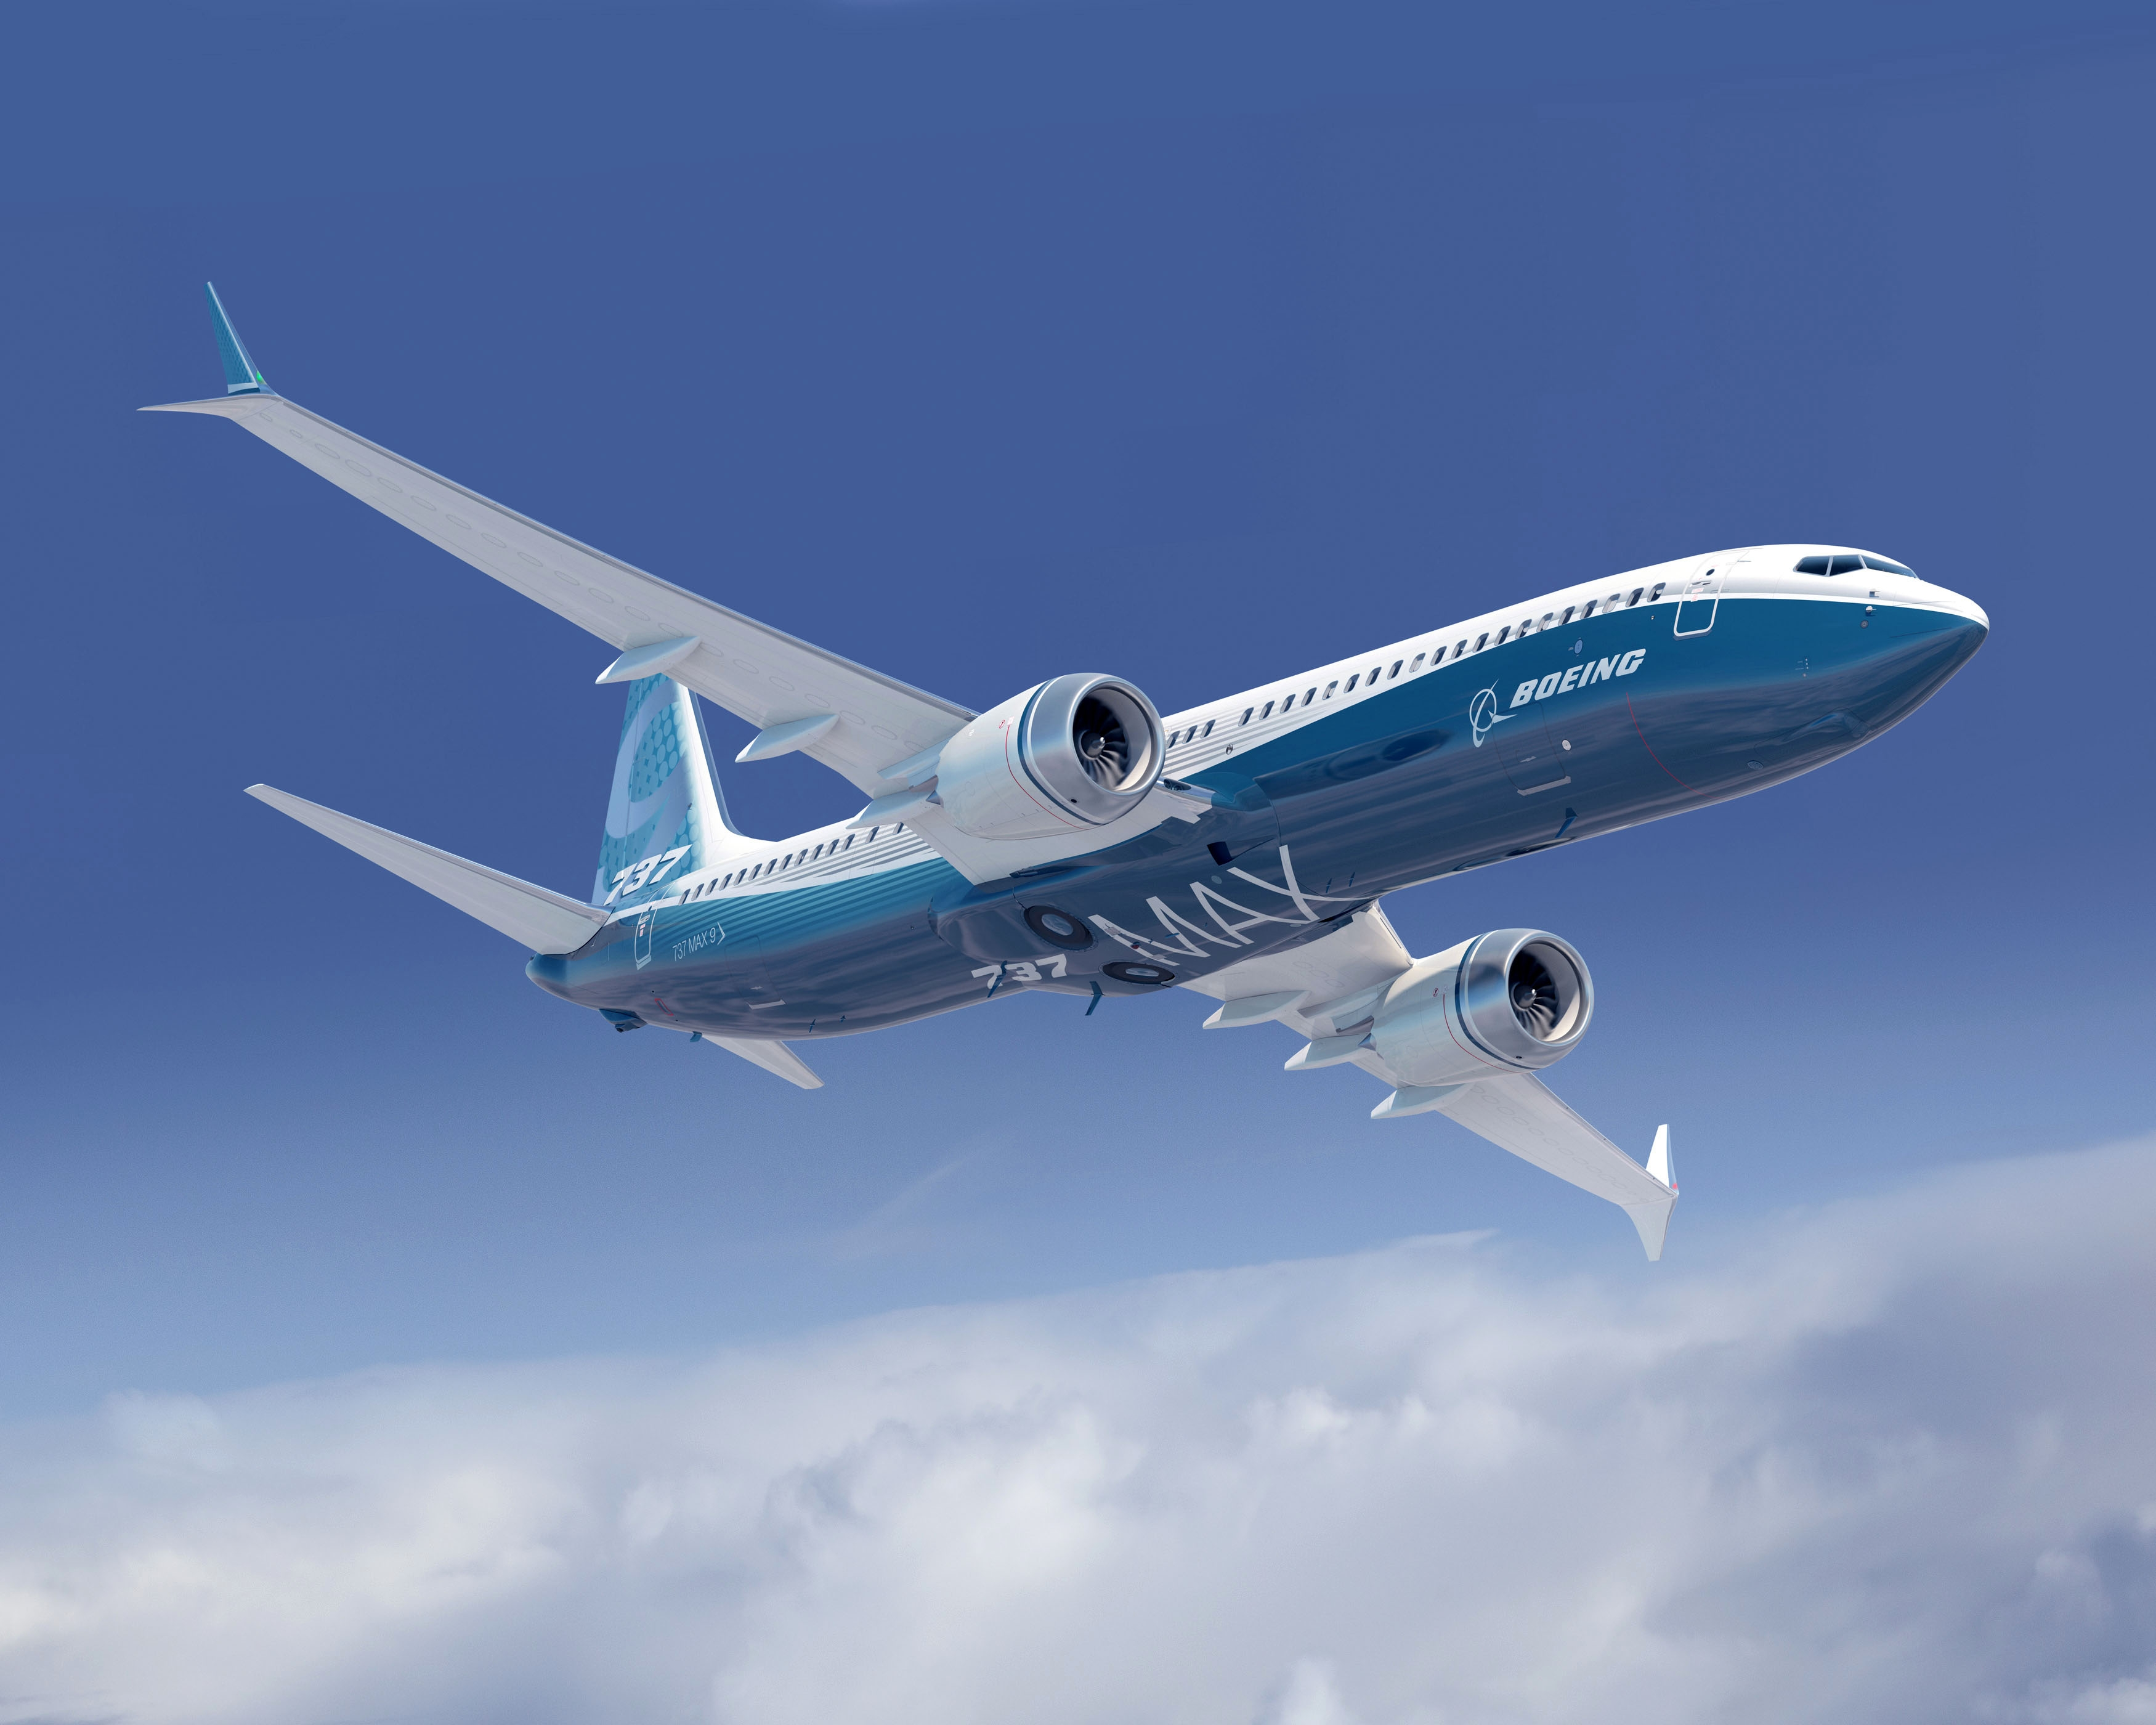 A year after grounding, FAA and Boeing conduct first certification flight for updated 737 MAX jet